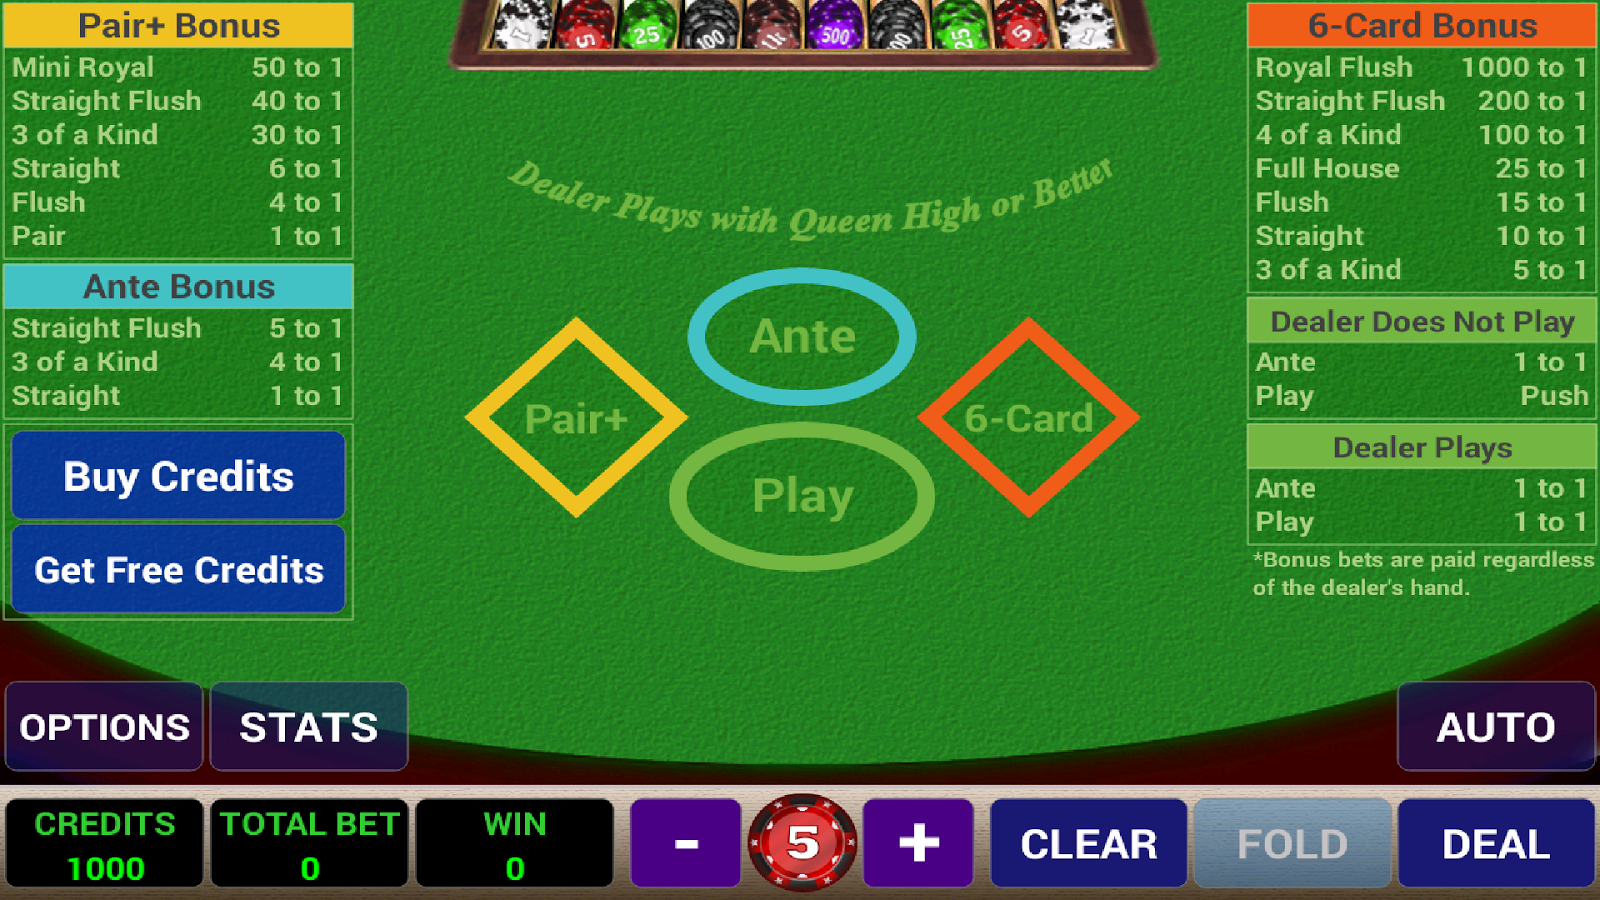 3 card poker with 6 card bonus play for fun